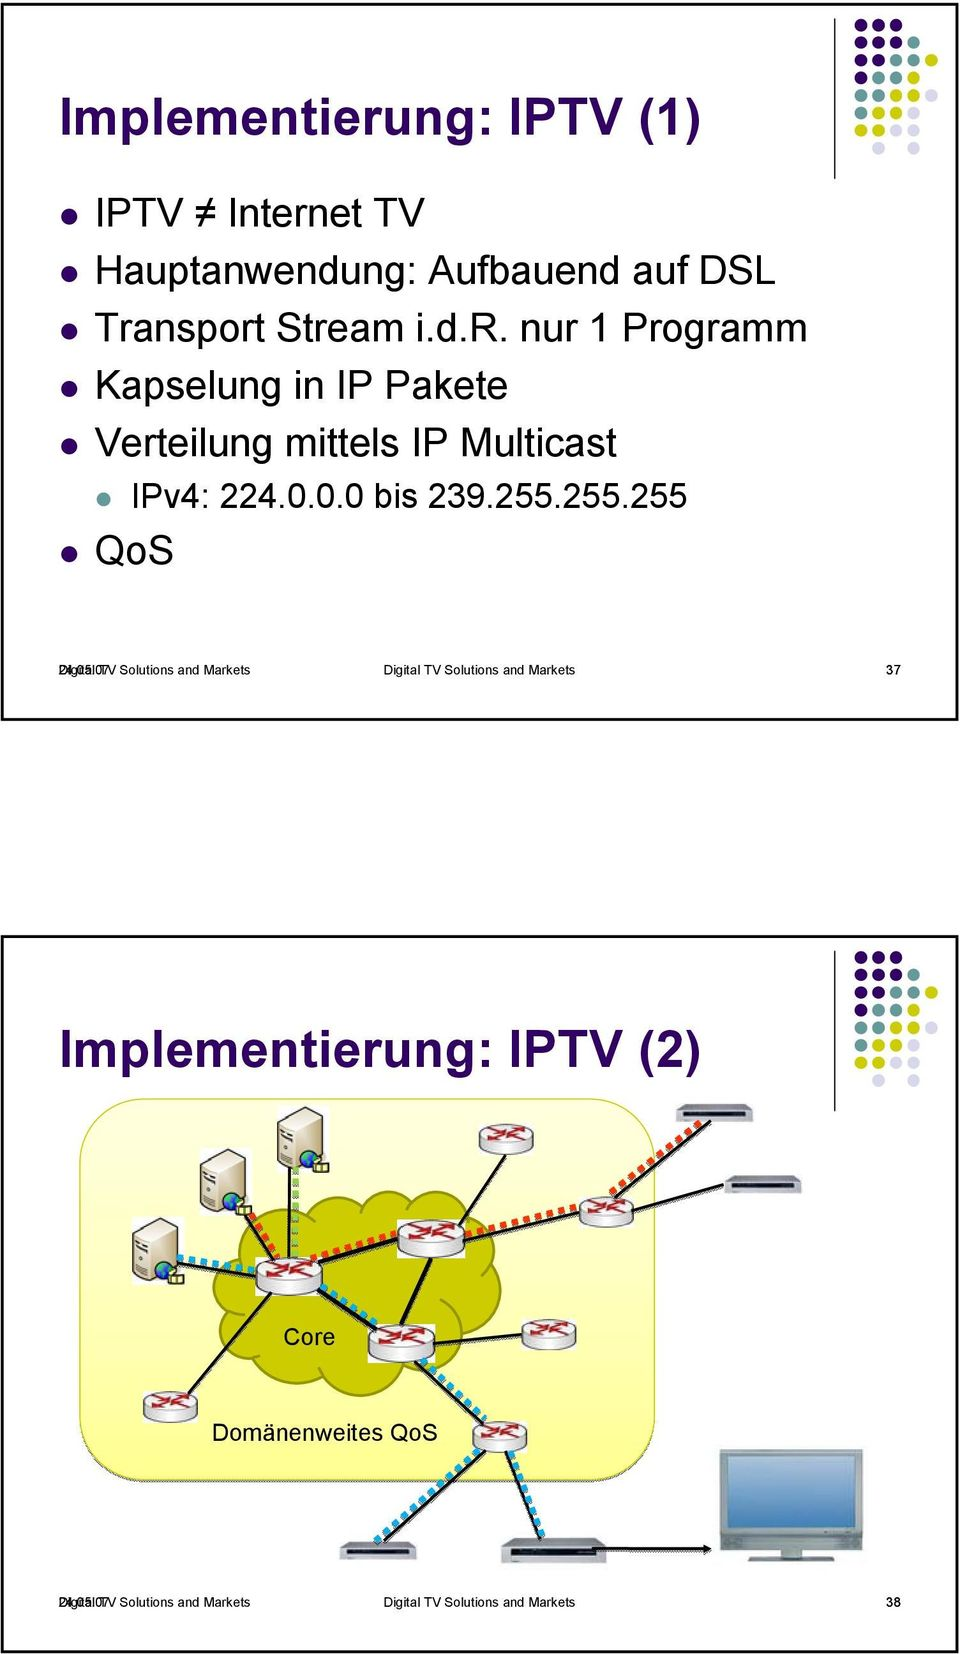 07 Digital TV Solutions and Markets Digital TV Solutions and Markets 37 Implementierung: IPTV (2) Core